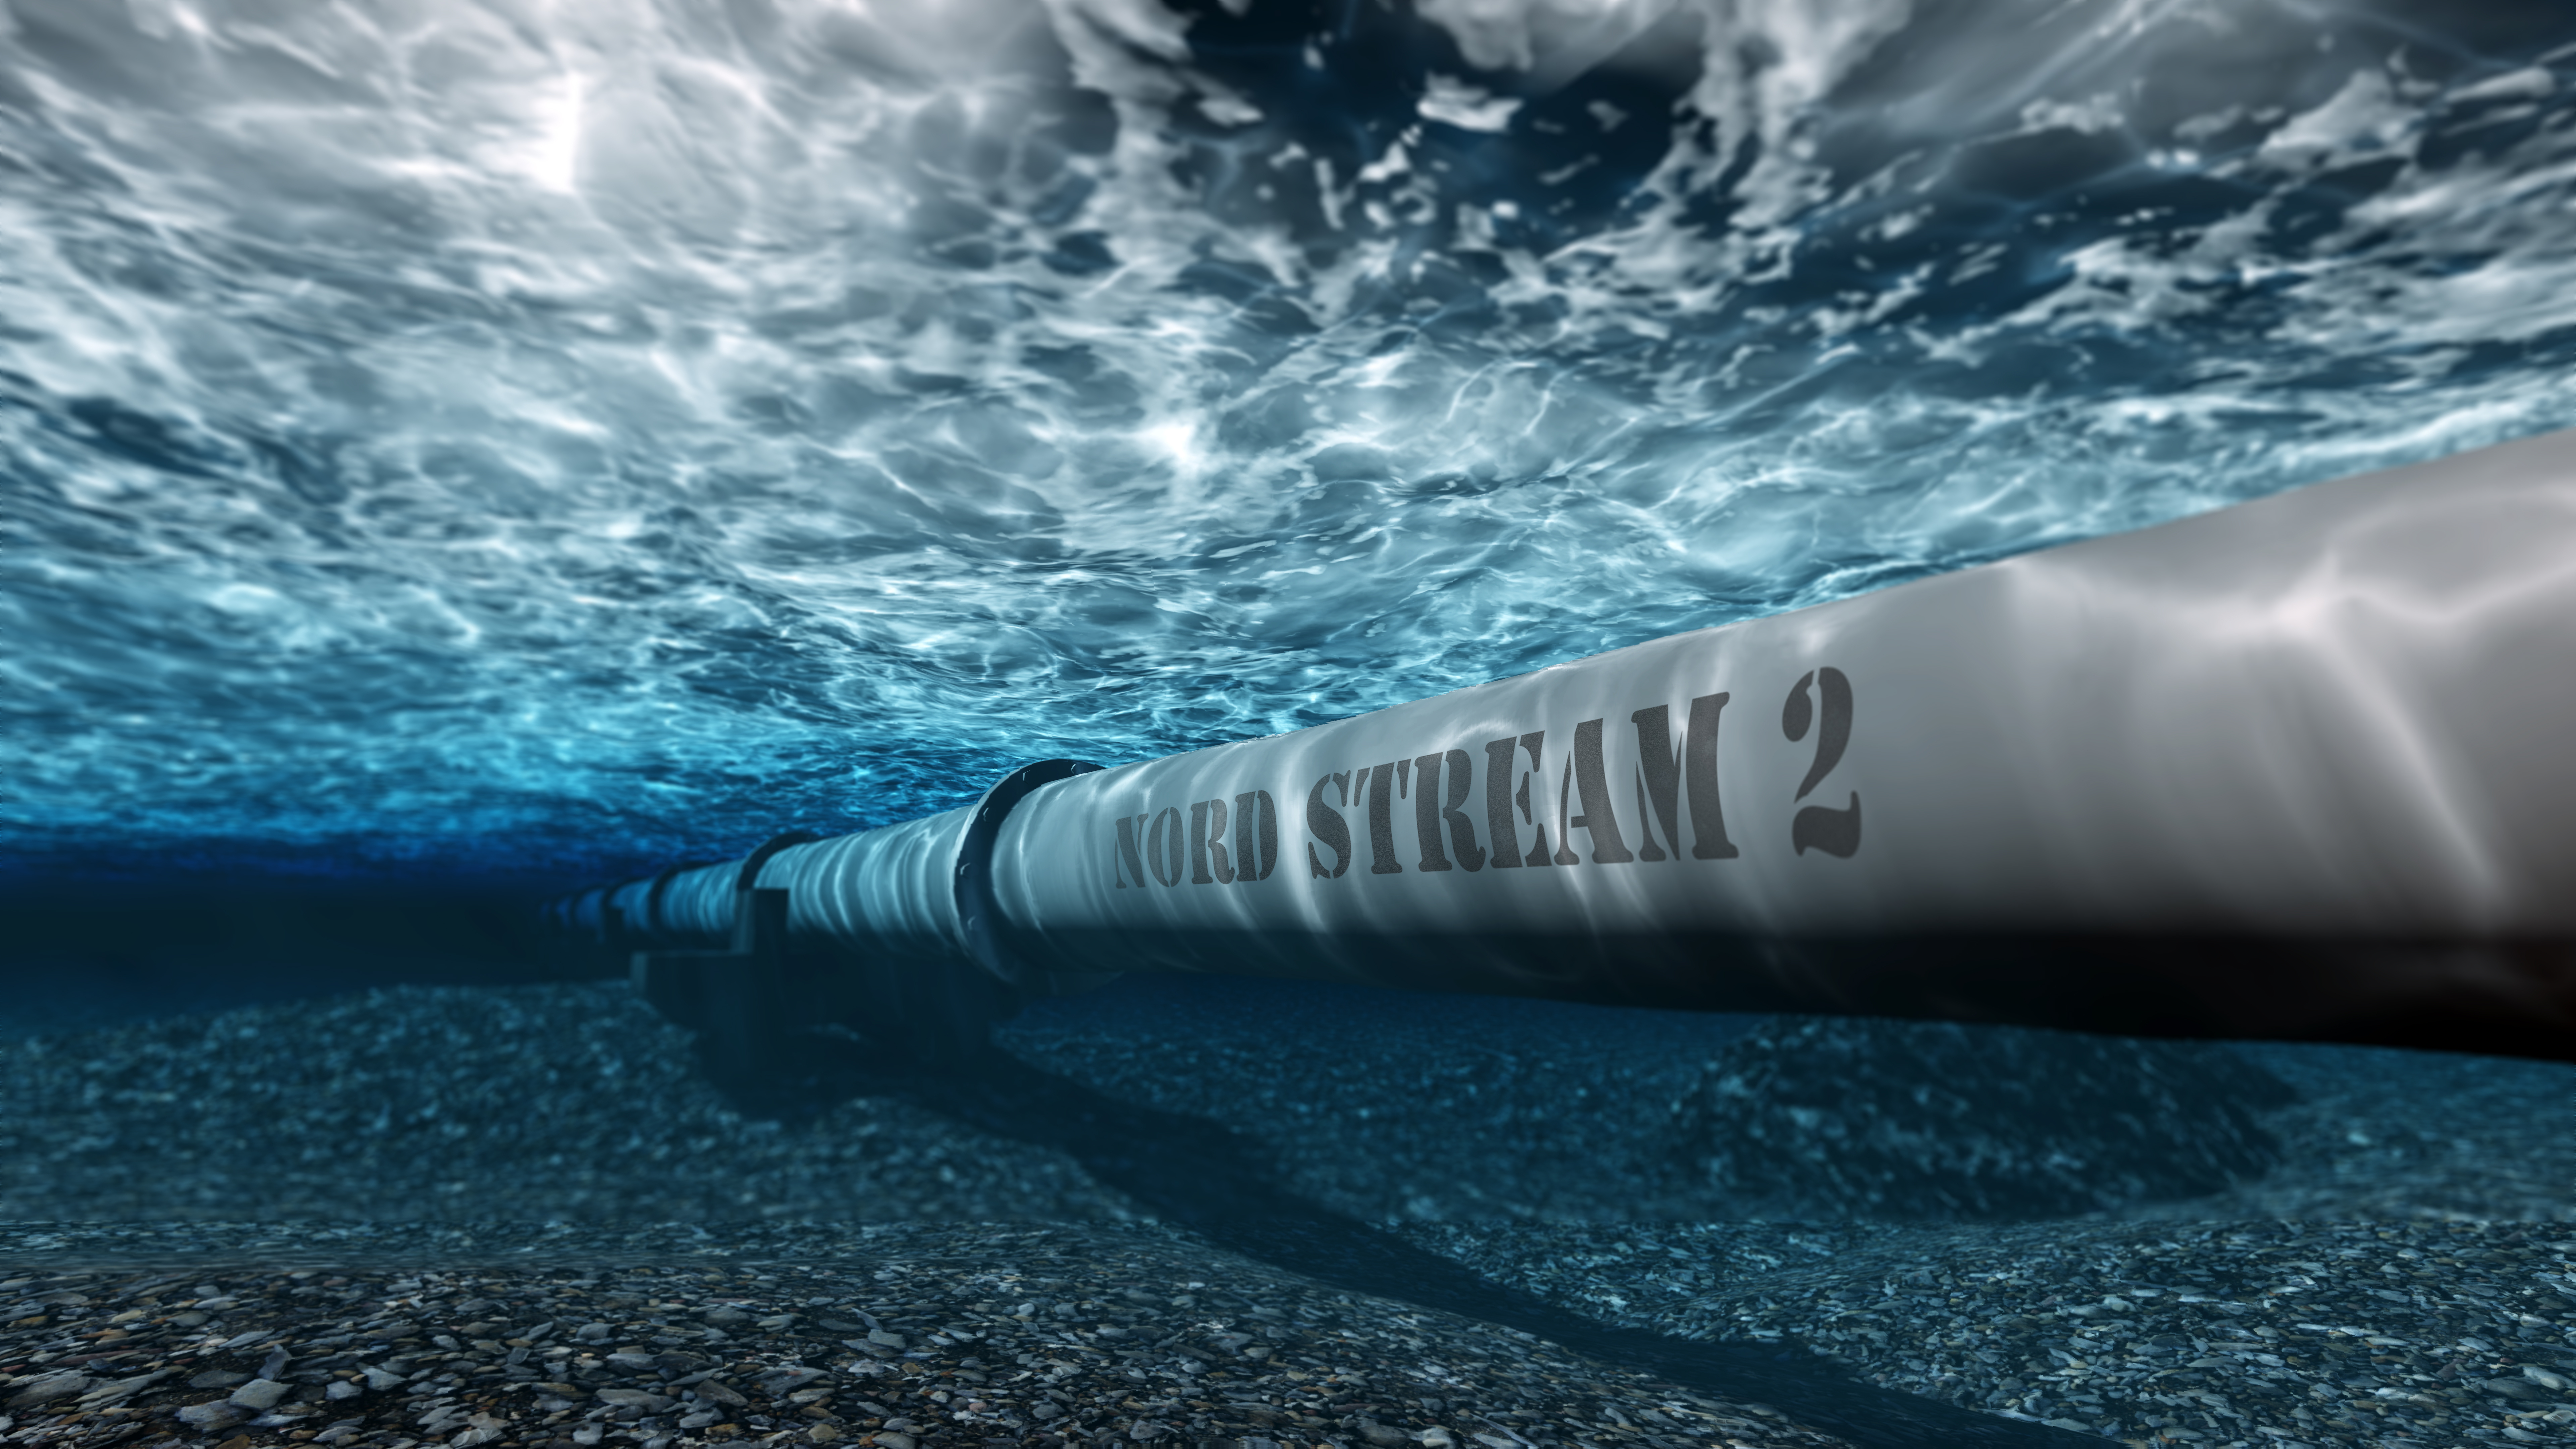 Nord Stream 2 Gas Pipeline: 5 Geopolitical Effects You Need to Know